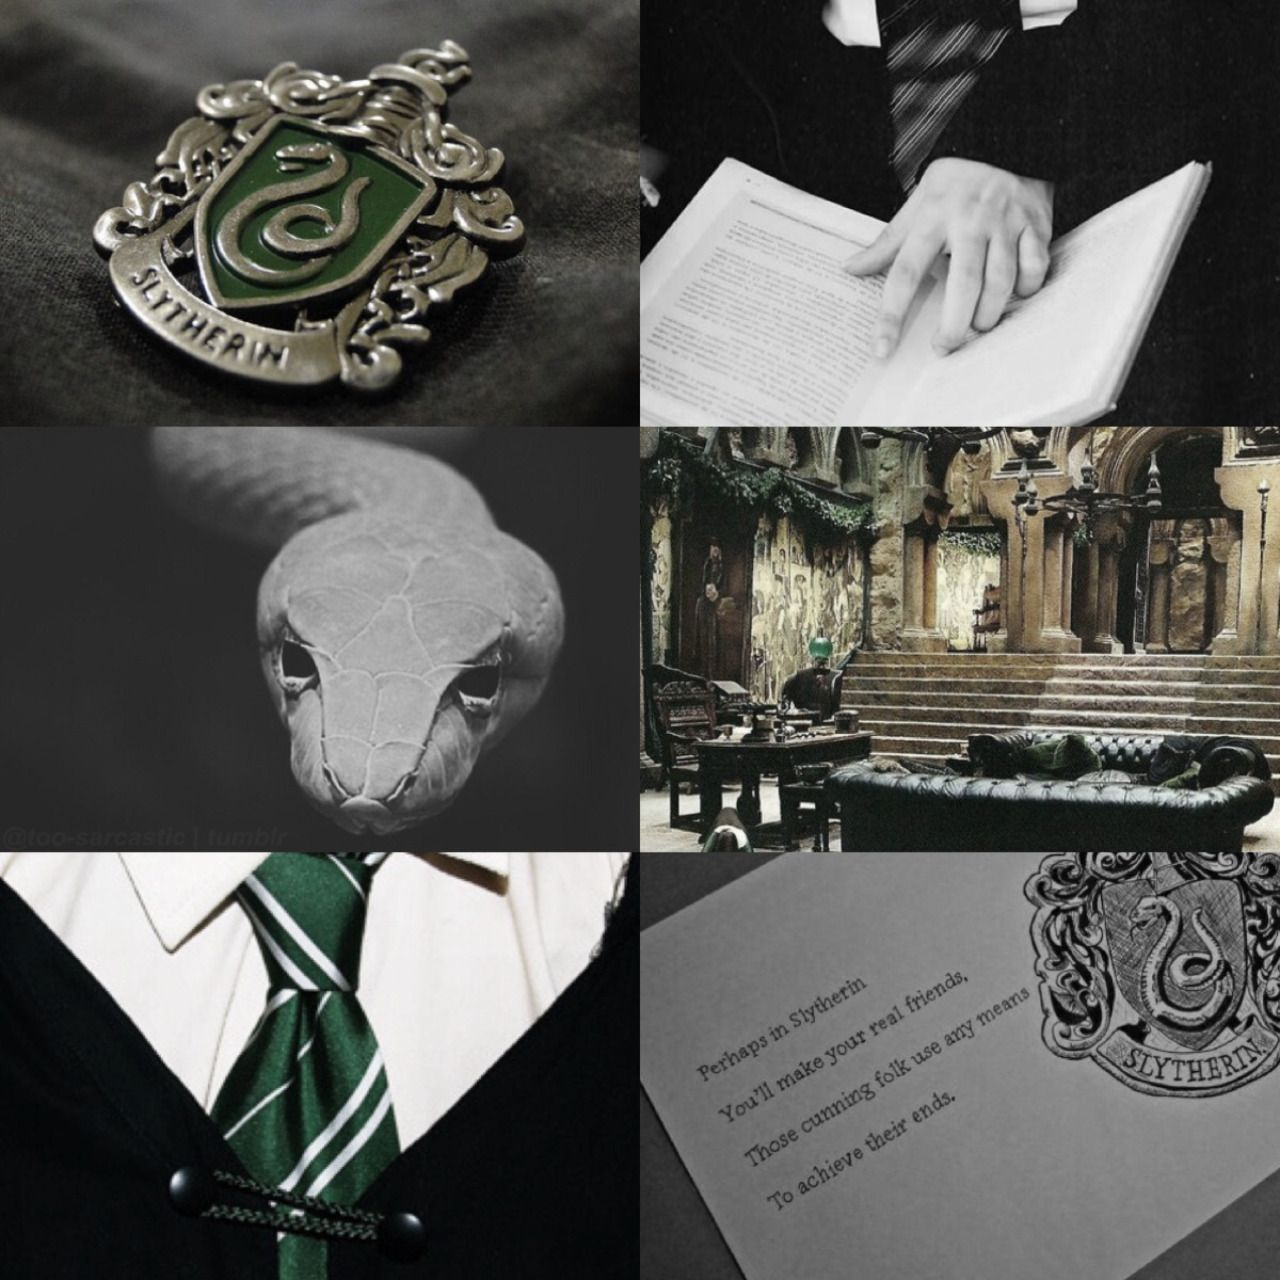 slytherin aesthetic Google Search Slytherin aesthetic